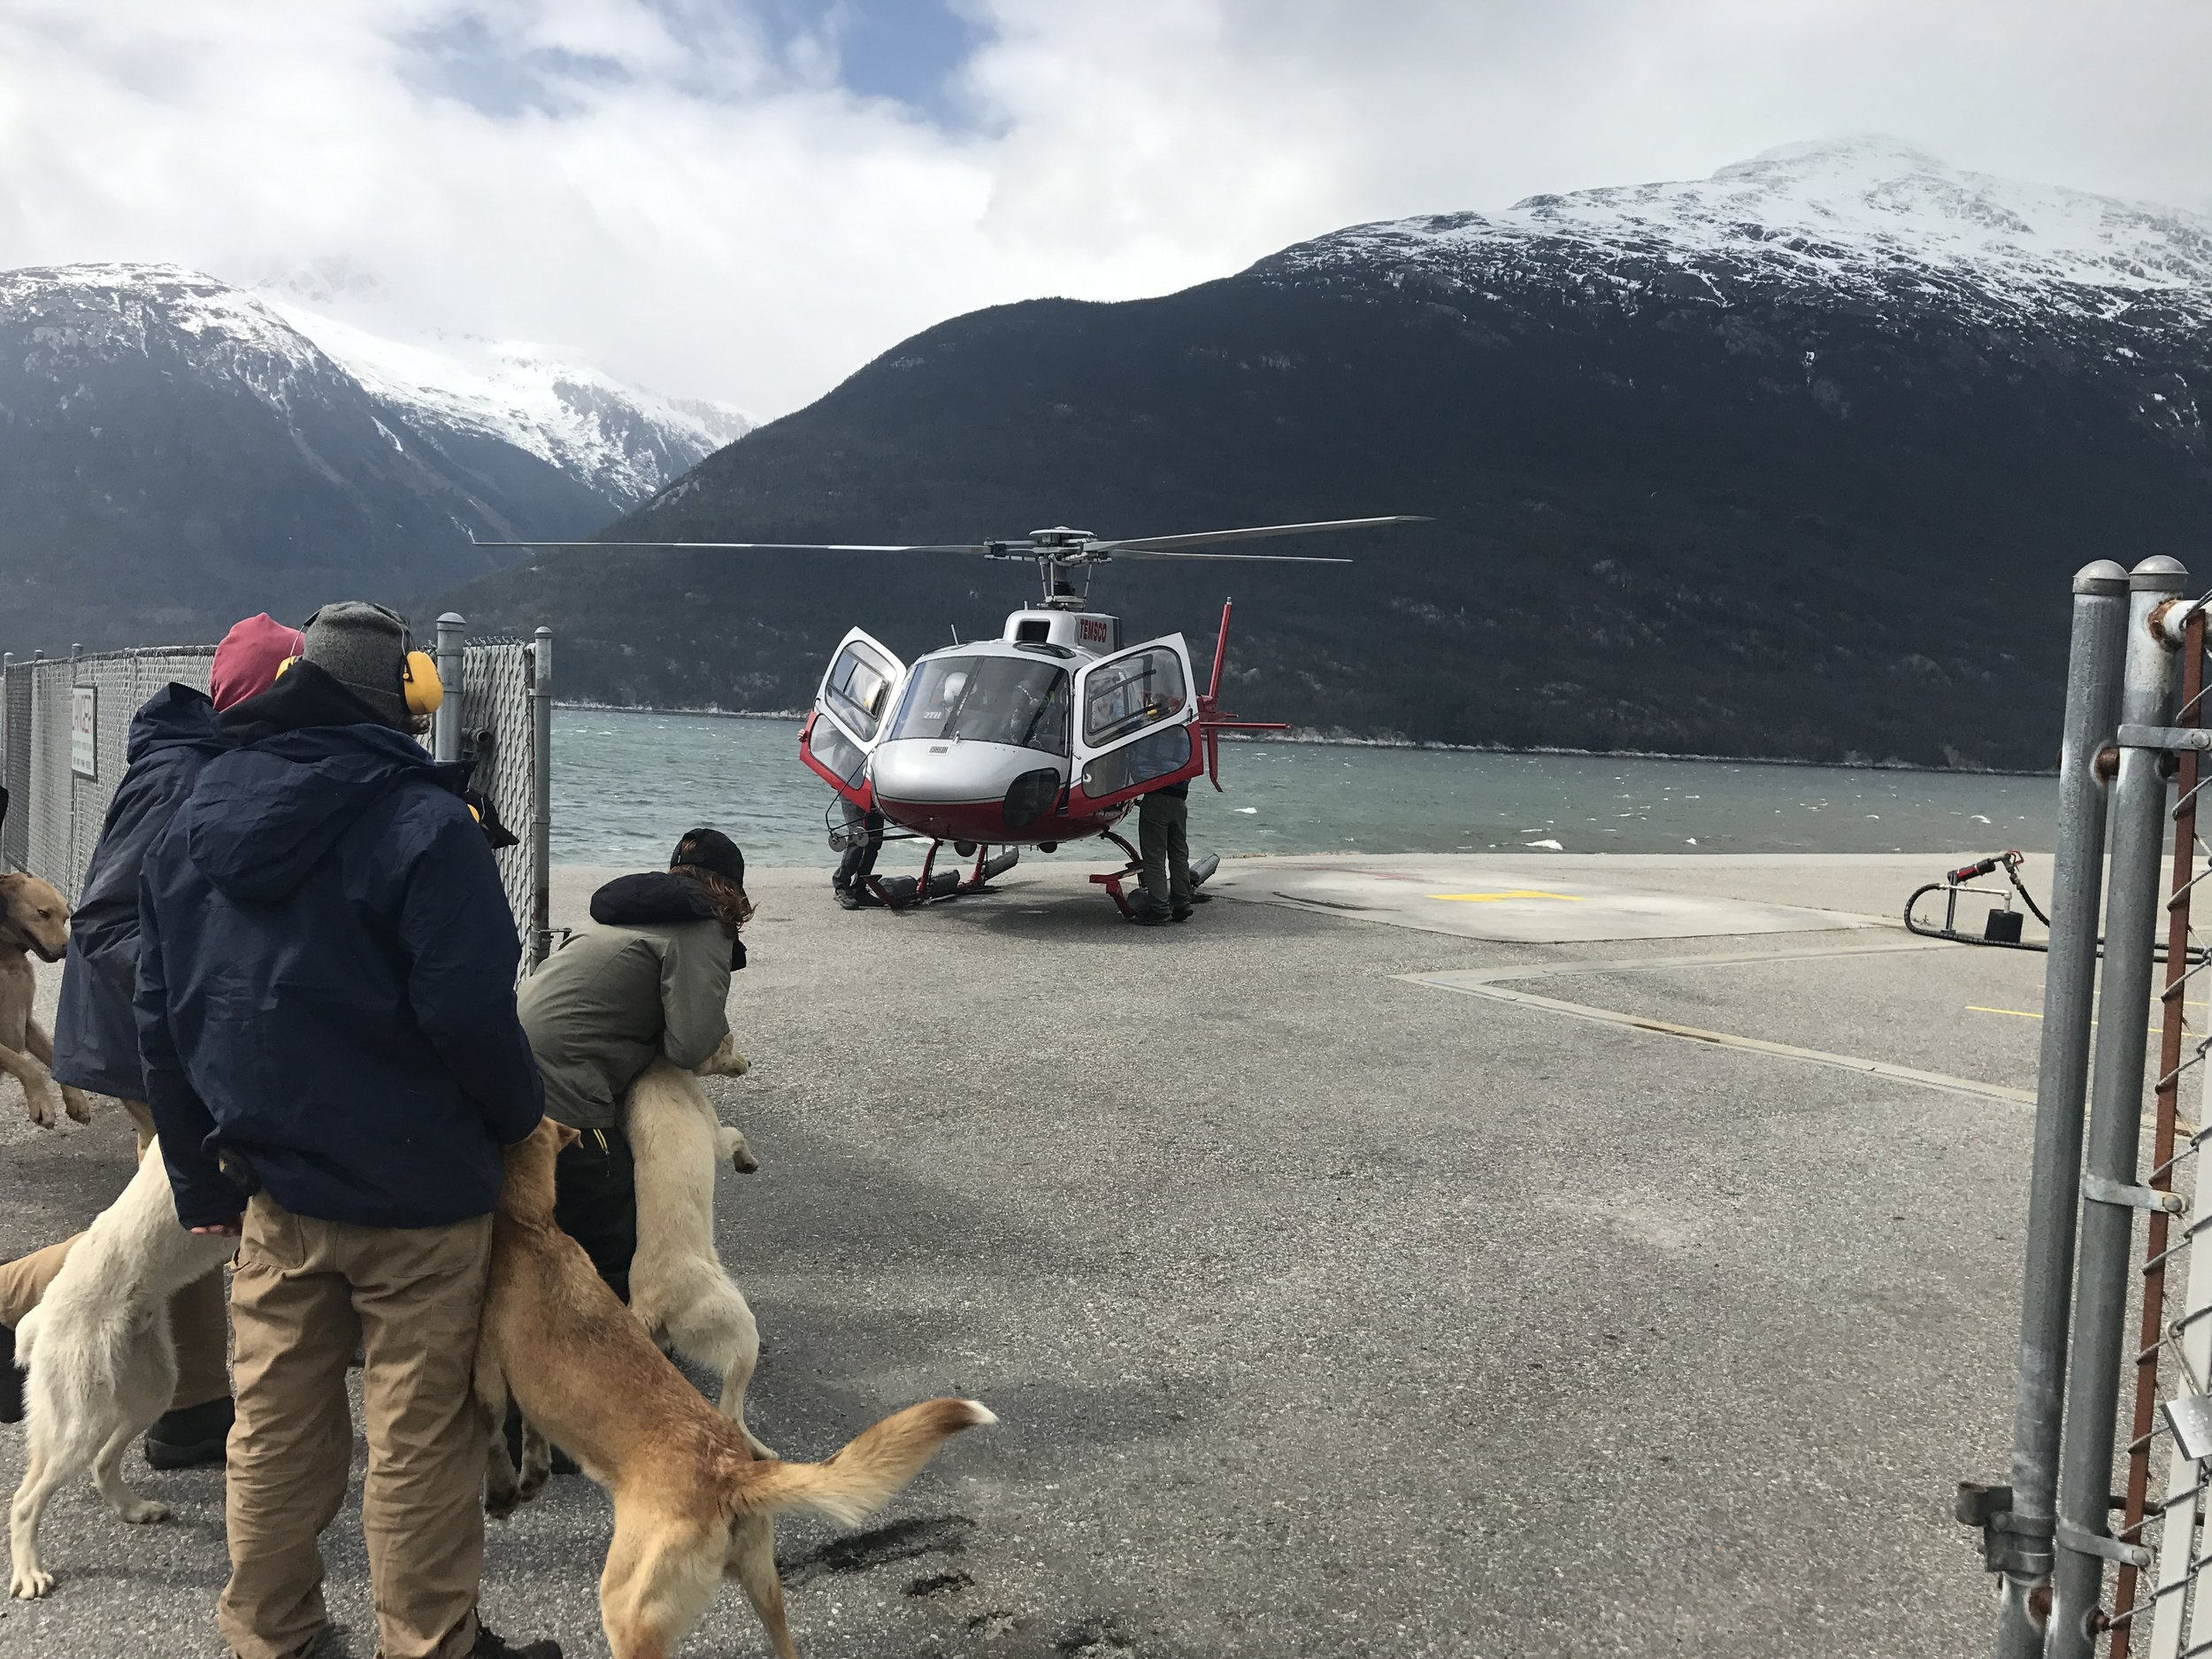 Everybody is awaiting their helicopter ride up to the Denver Glacier